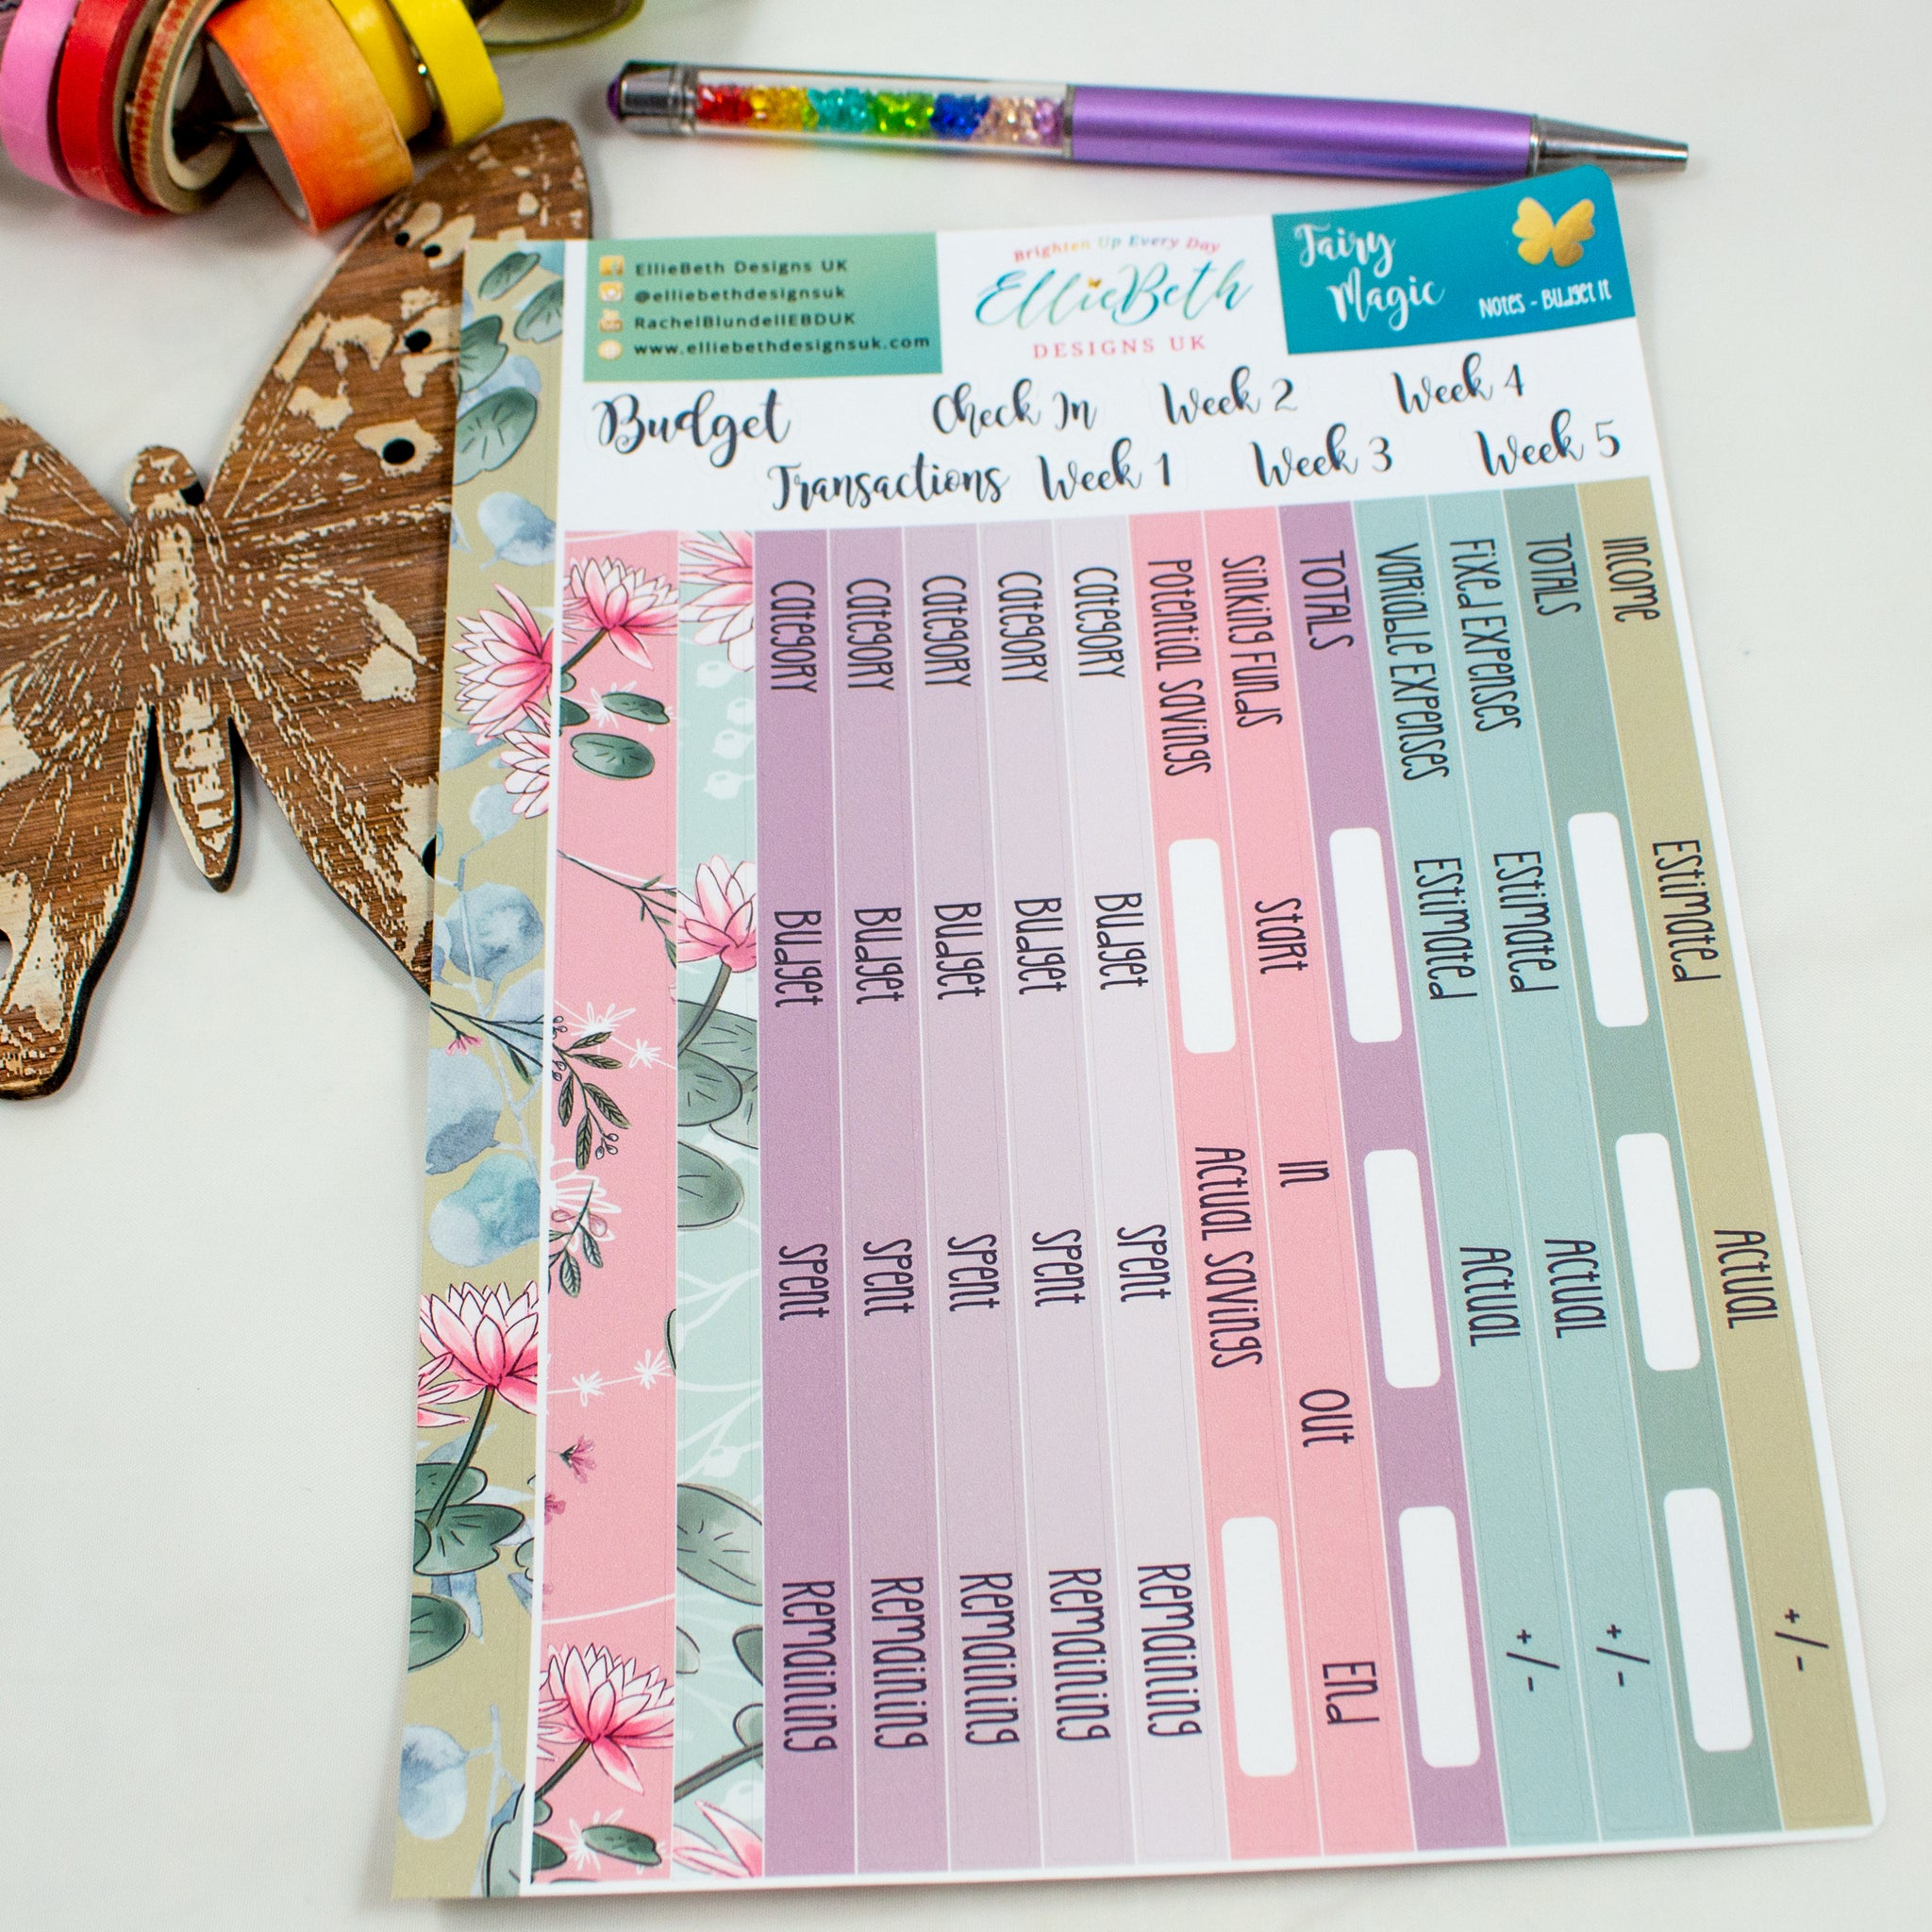 Fairy Magic - Notes 'Budget It' - A5 binder ready planner stickers